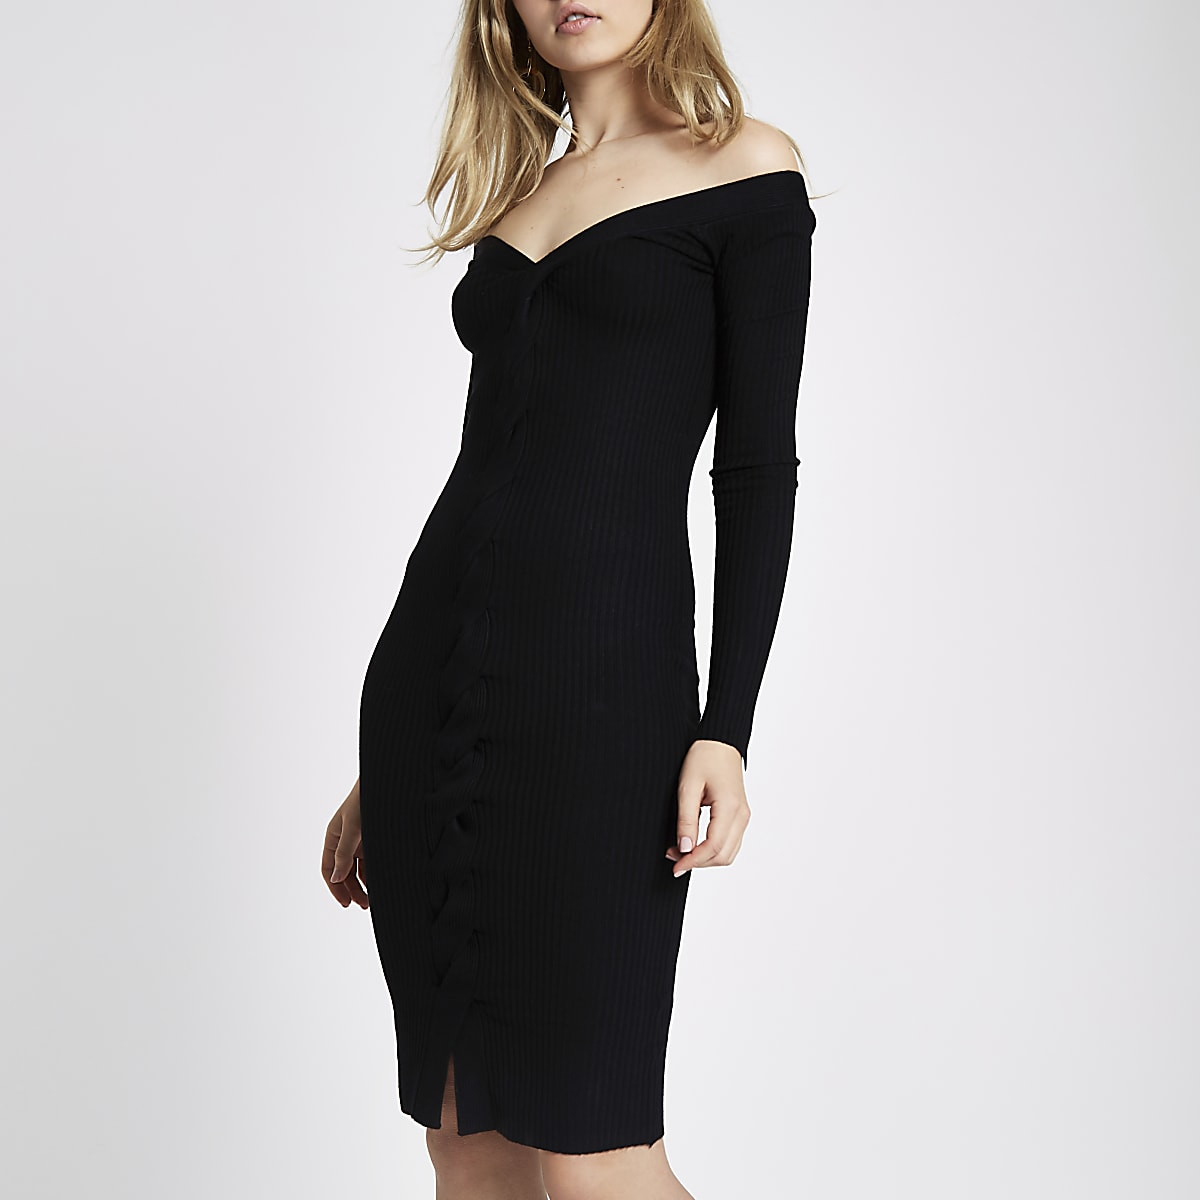 2d216e33a78 Black cable knit cut out midi dress - Bodycon Dresses - Dresses - women